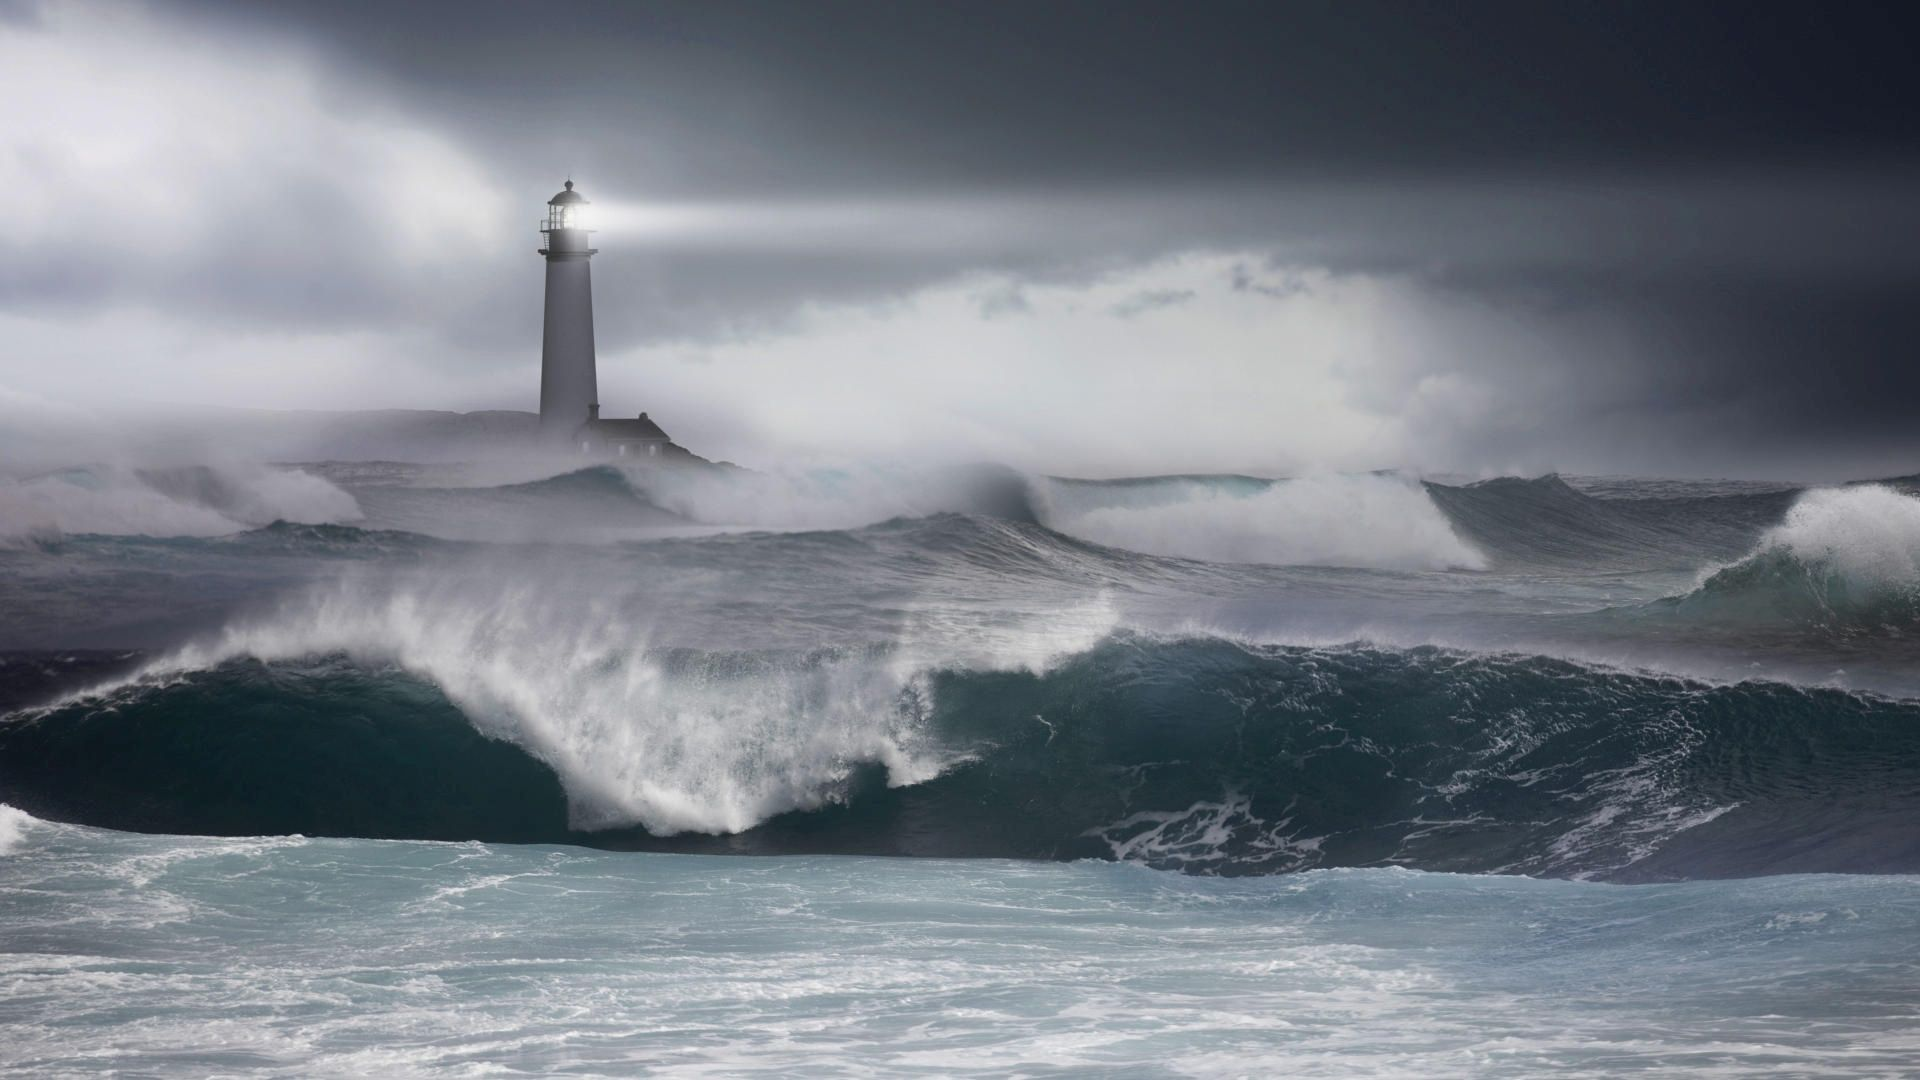 lighthouse in the storm hd wallpaper 1920x1080 lighthous